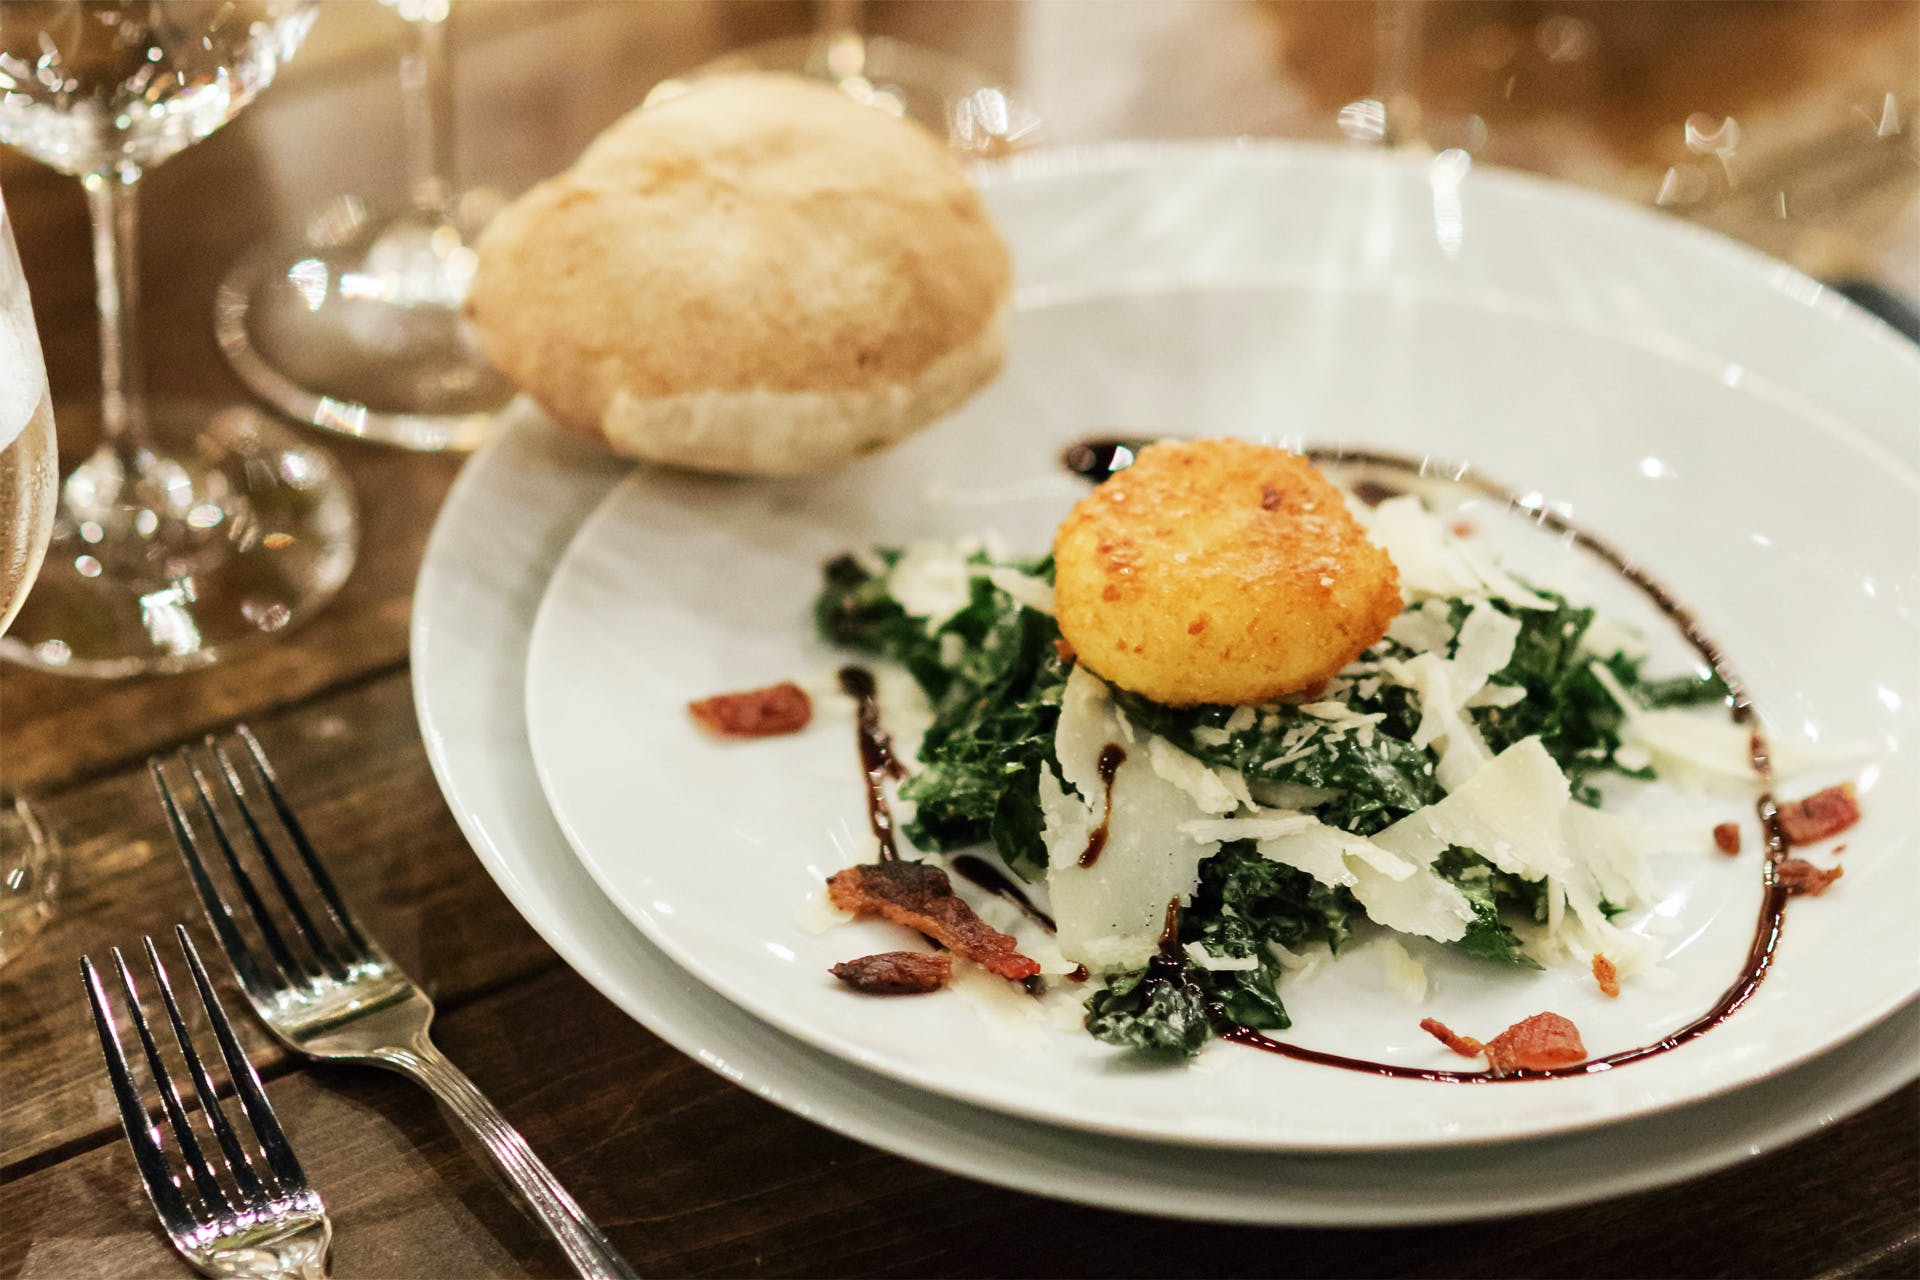 Kale Caesar Salad with Fried Poached Egg & Bacon